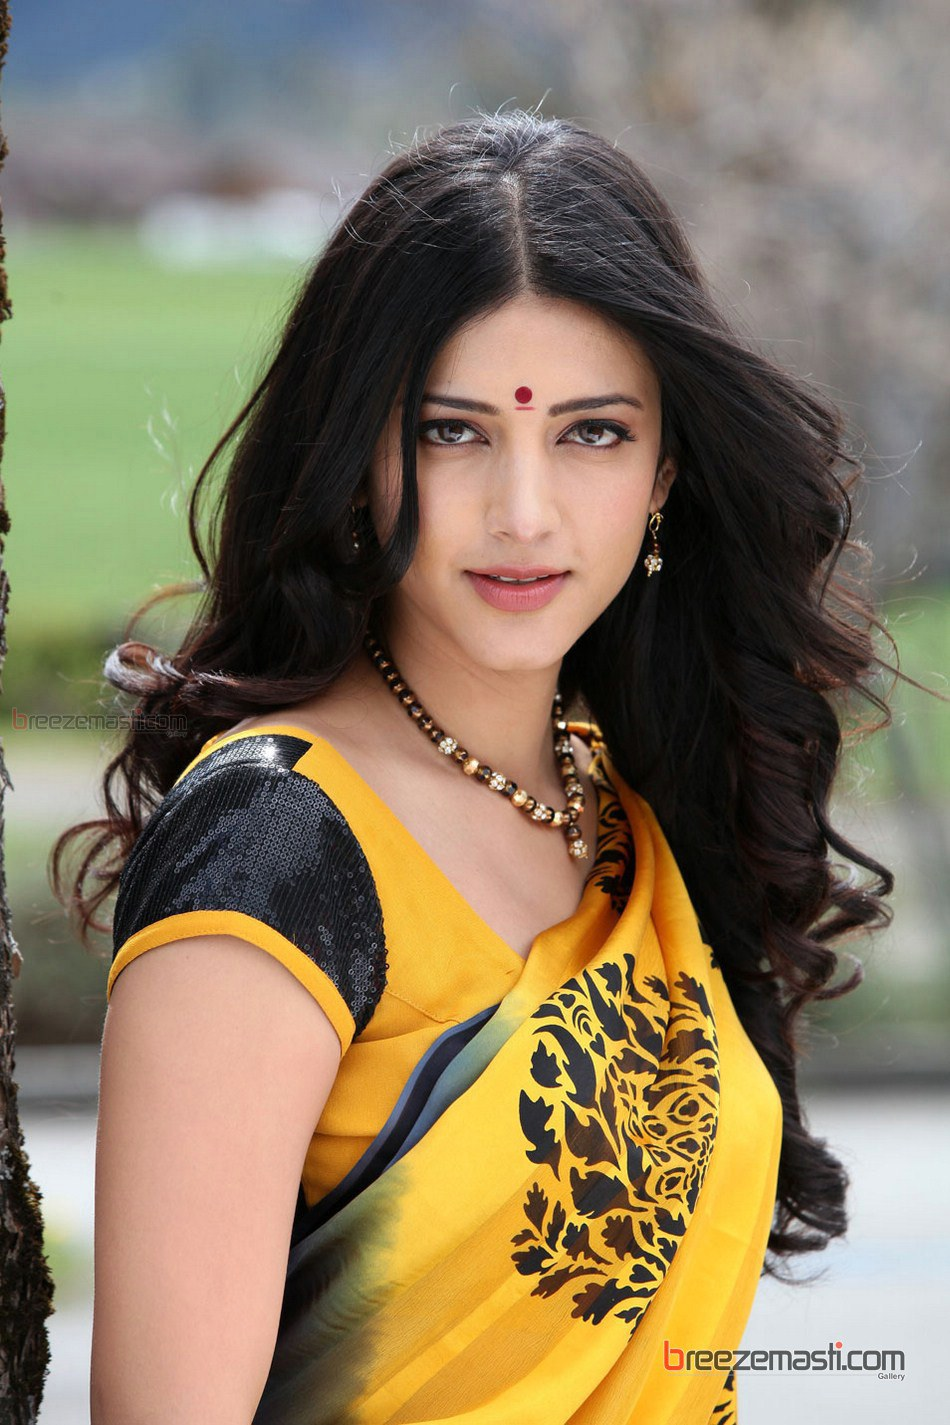 shruti-hassan-bollywood-actress-hot-photos-2 - breezemasti gallery